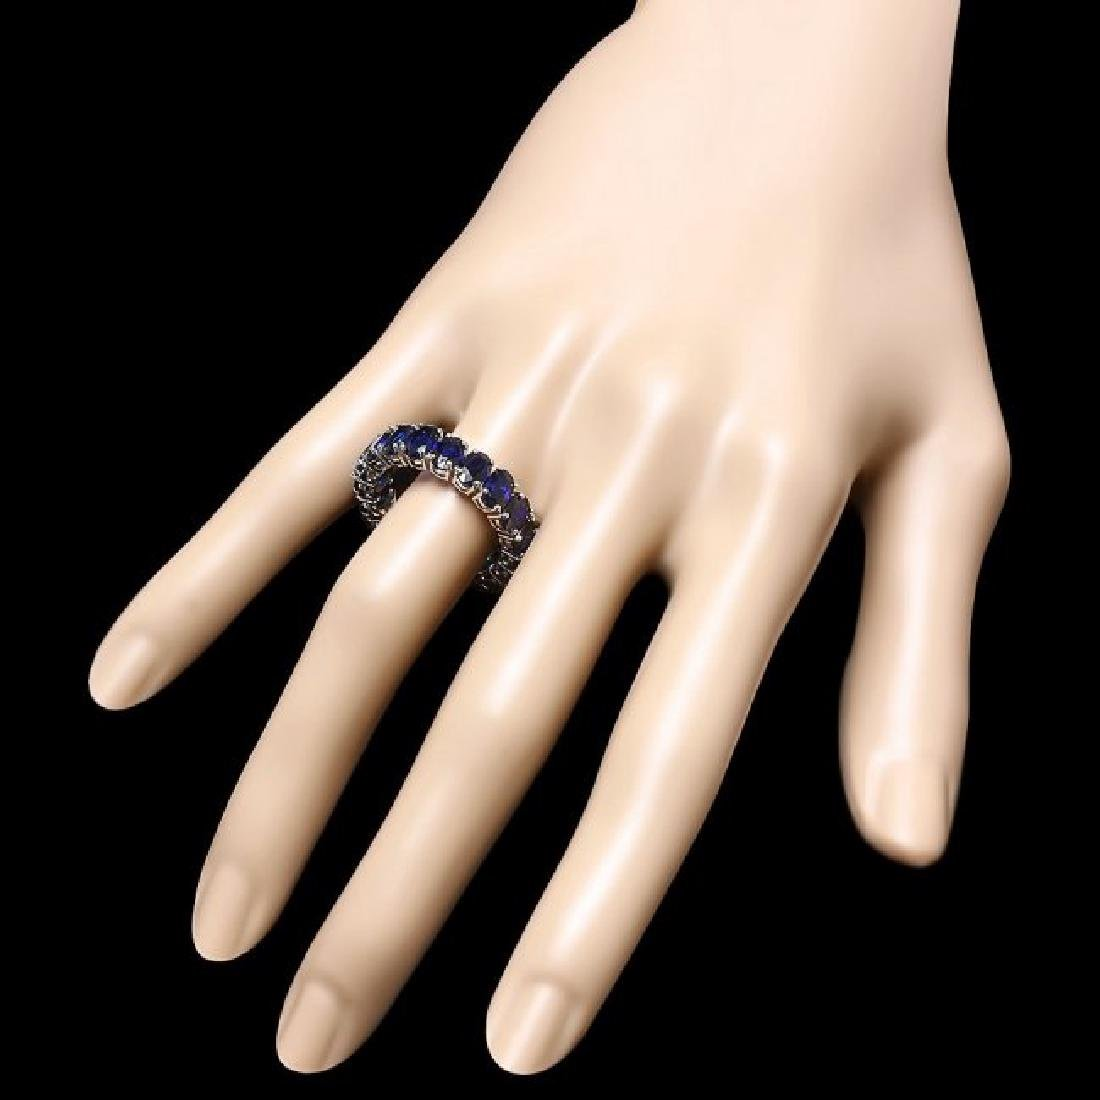 14k White Gold 9.00ct Sapphire Ring - 3